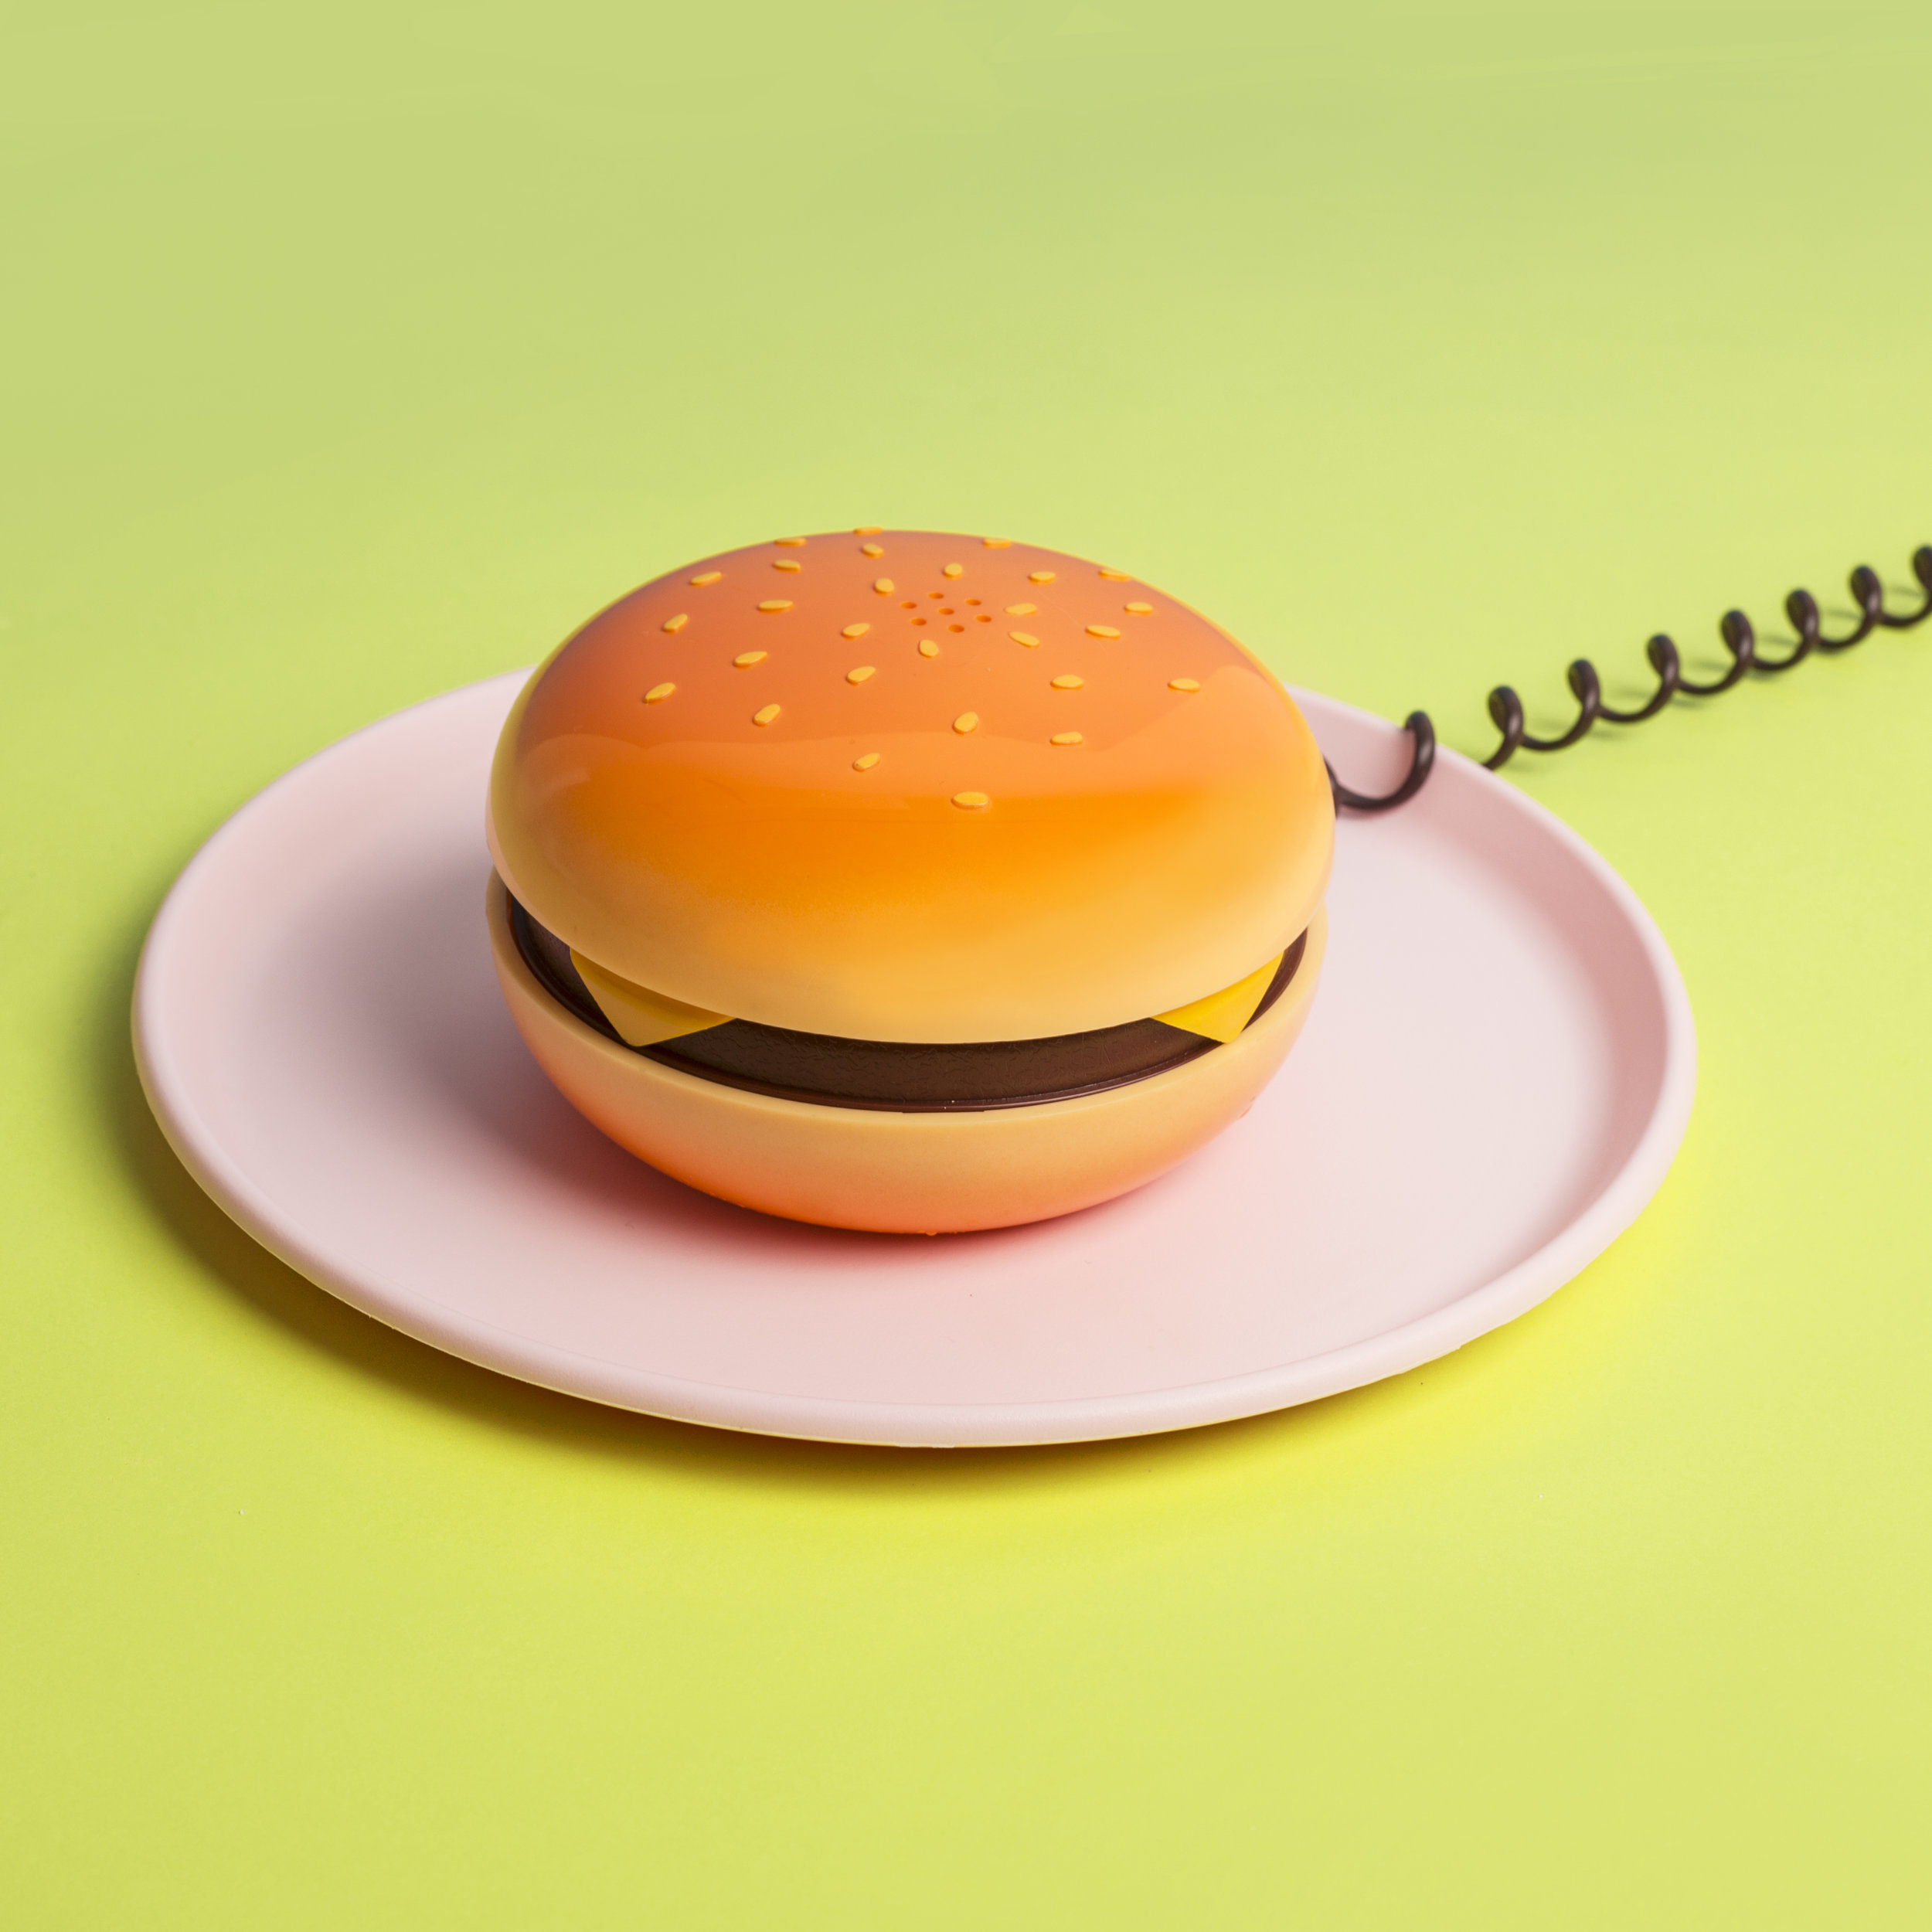 August 23rd - Burger Day